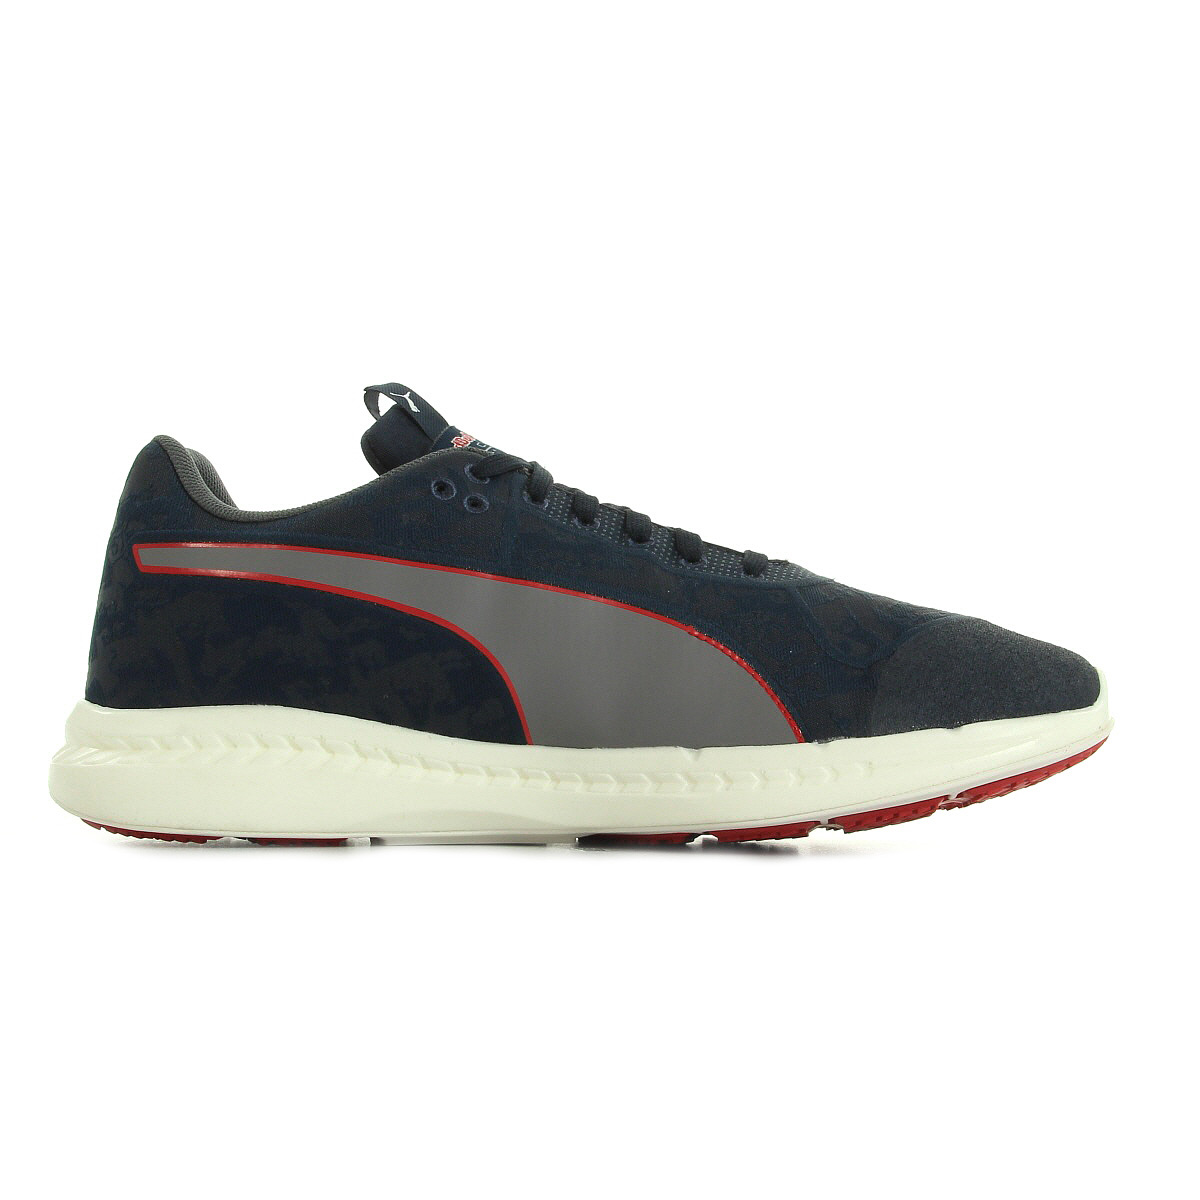 Baskets PUMA RBR MESHS IGNITE reZhXuCb